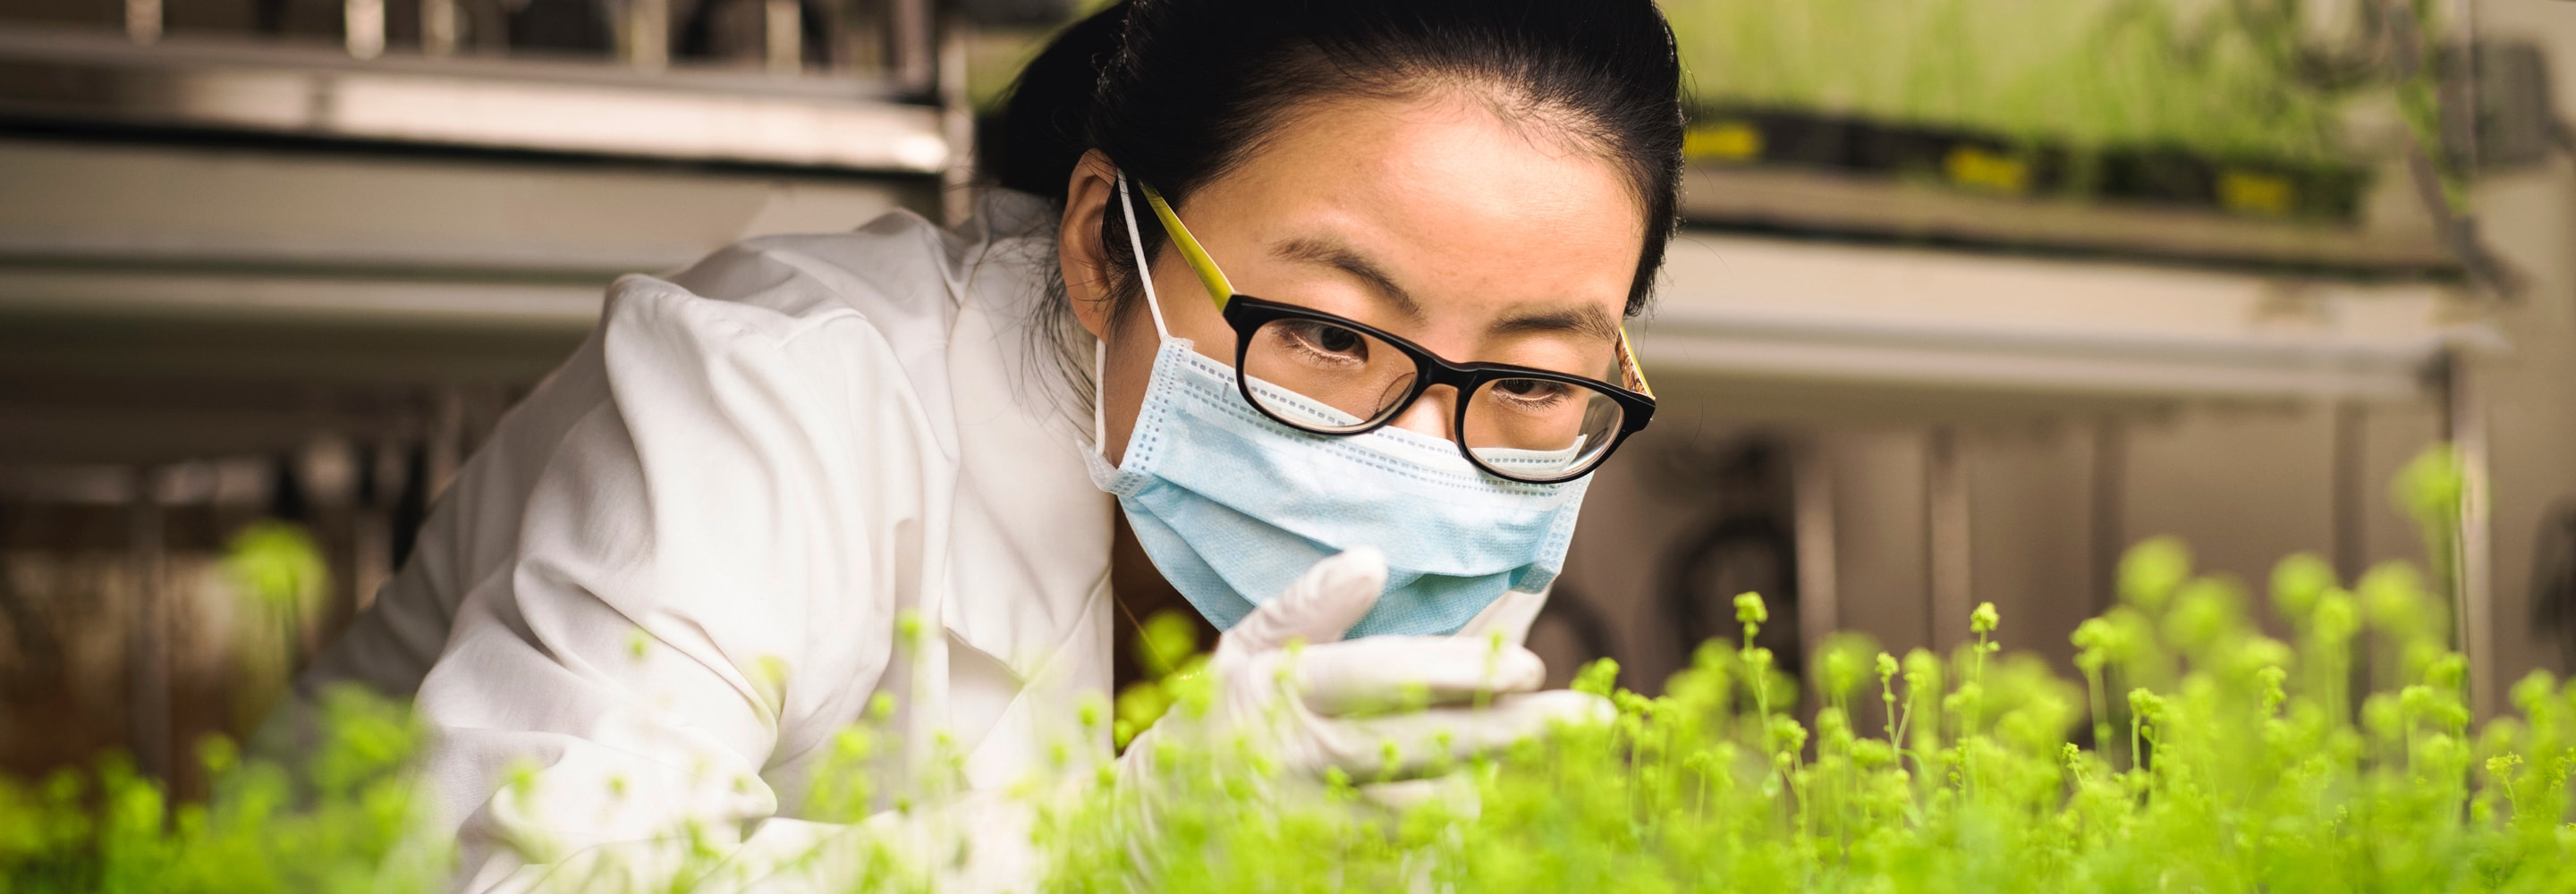 Scientist examining plants in laboratory